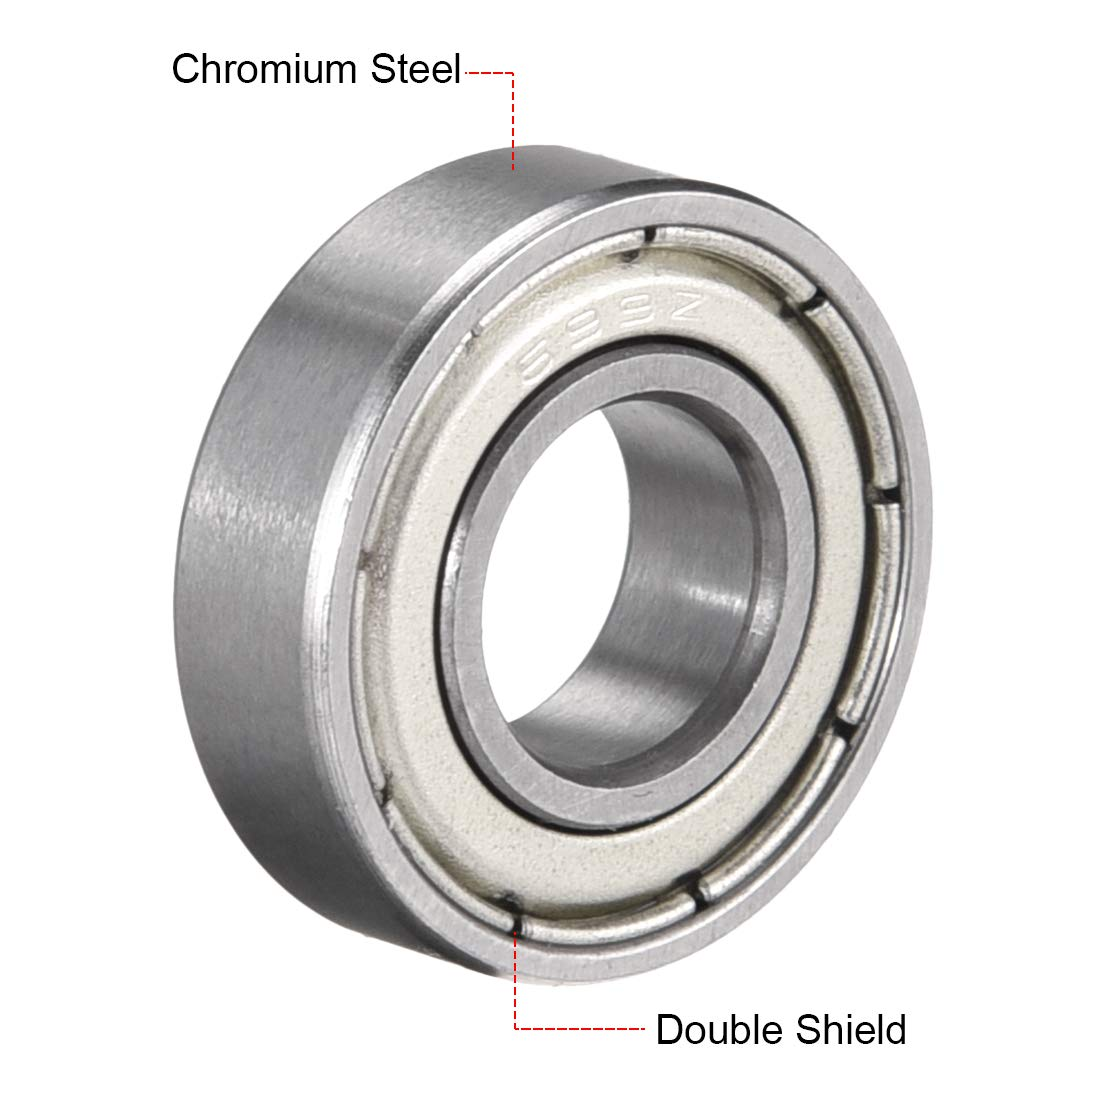 sourcing map 693ZZ Deep Groove Ball Bearing Double Shield 693-2Z 2080093 Pack of 4 3mm x 8mm x 4mm Carbon Steel Bearings